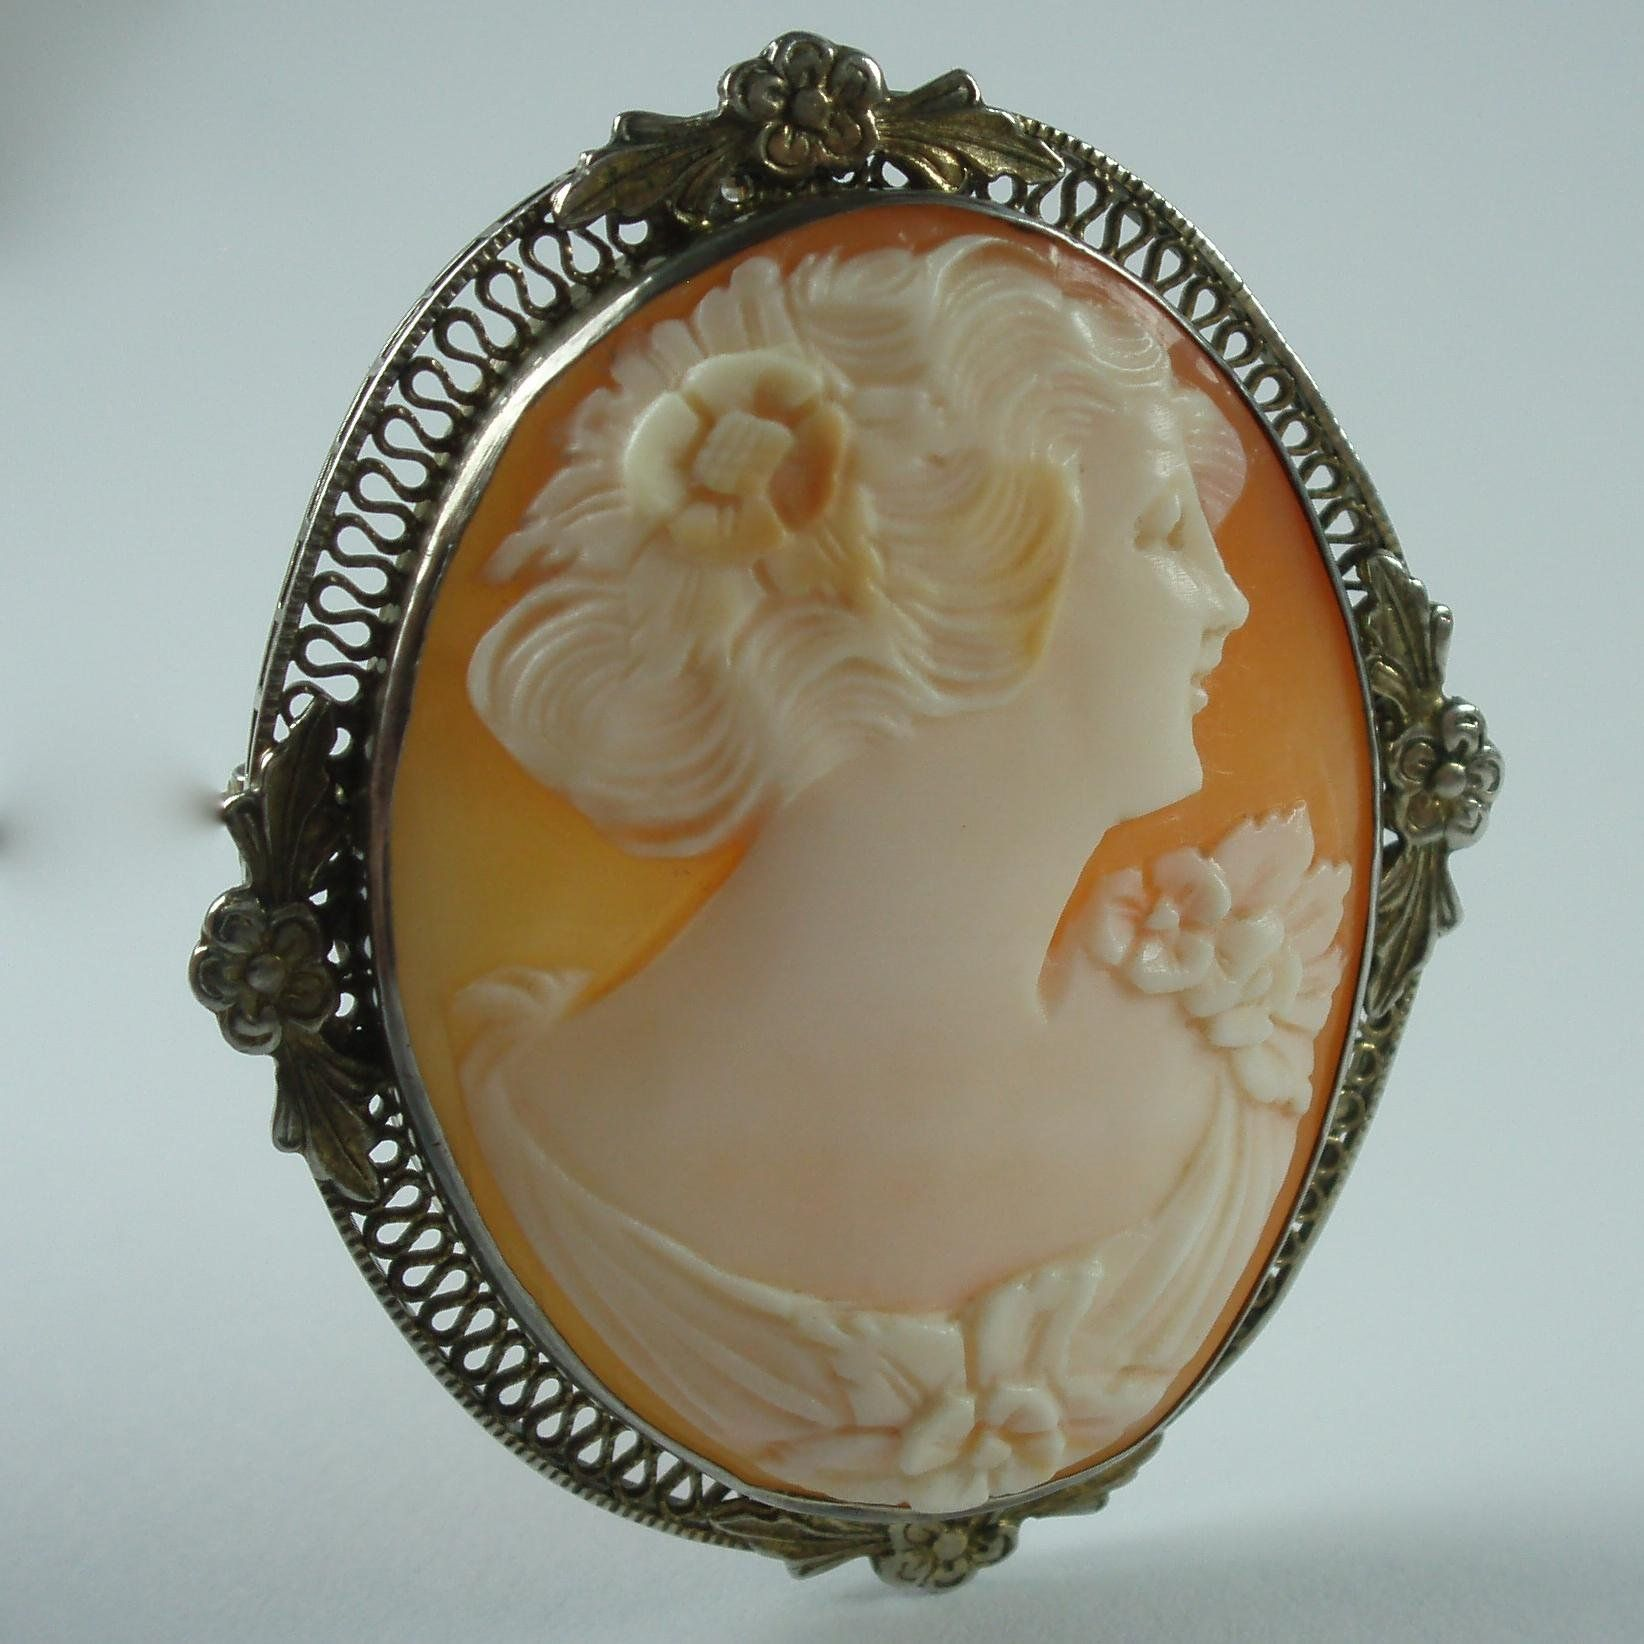 Vintage 14k Gold Hand Carved Cameo Brooch with Pendant Hoop